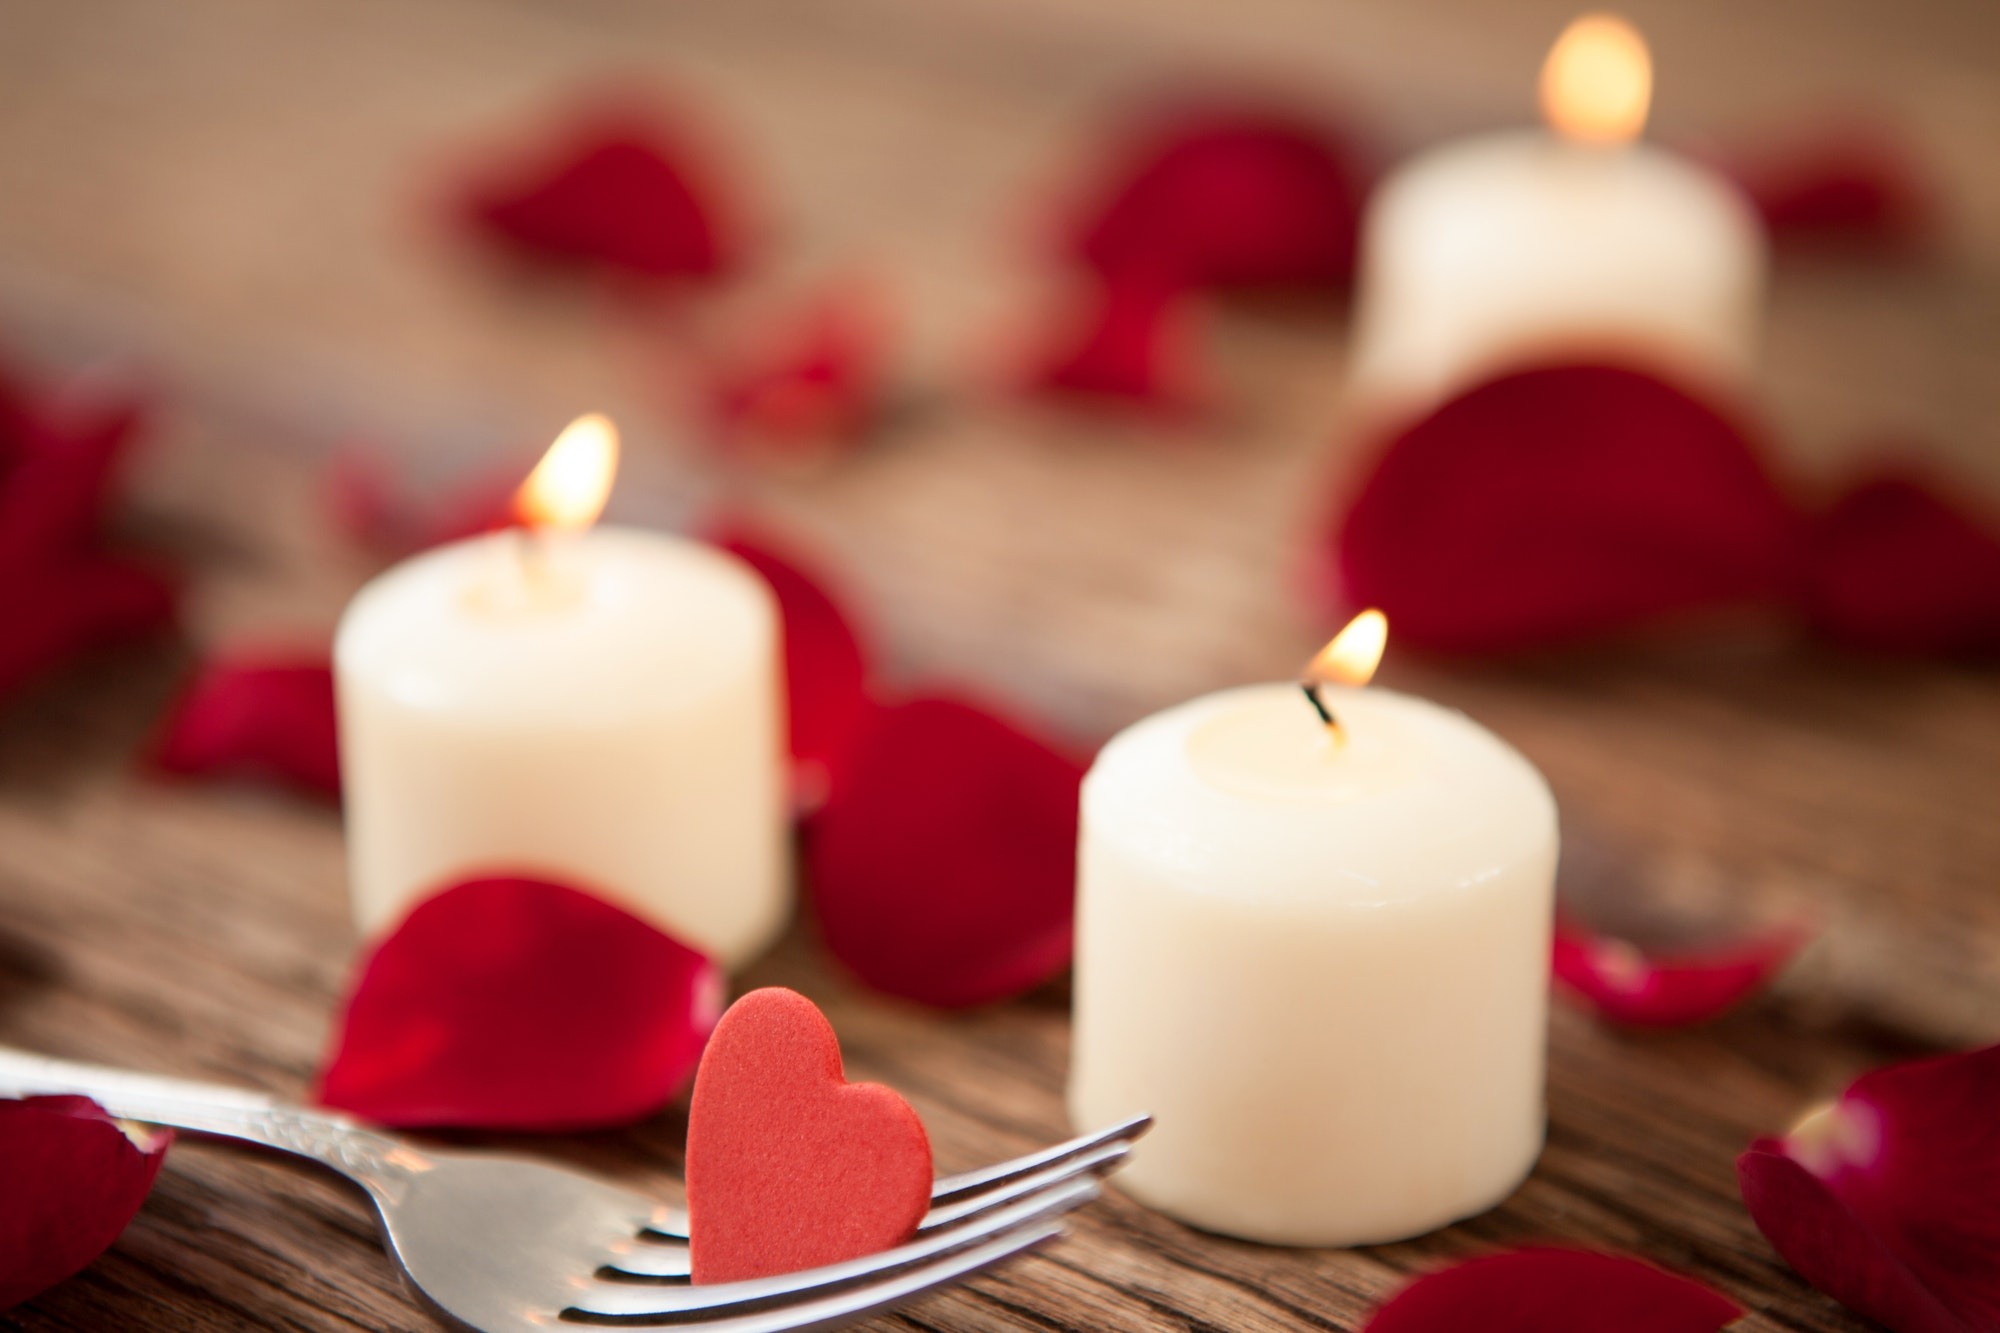 Wax candles surrounded with rose petals